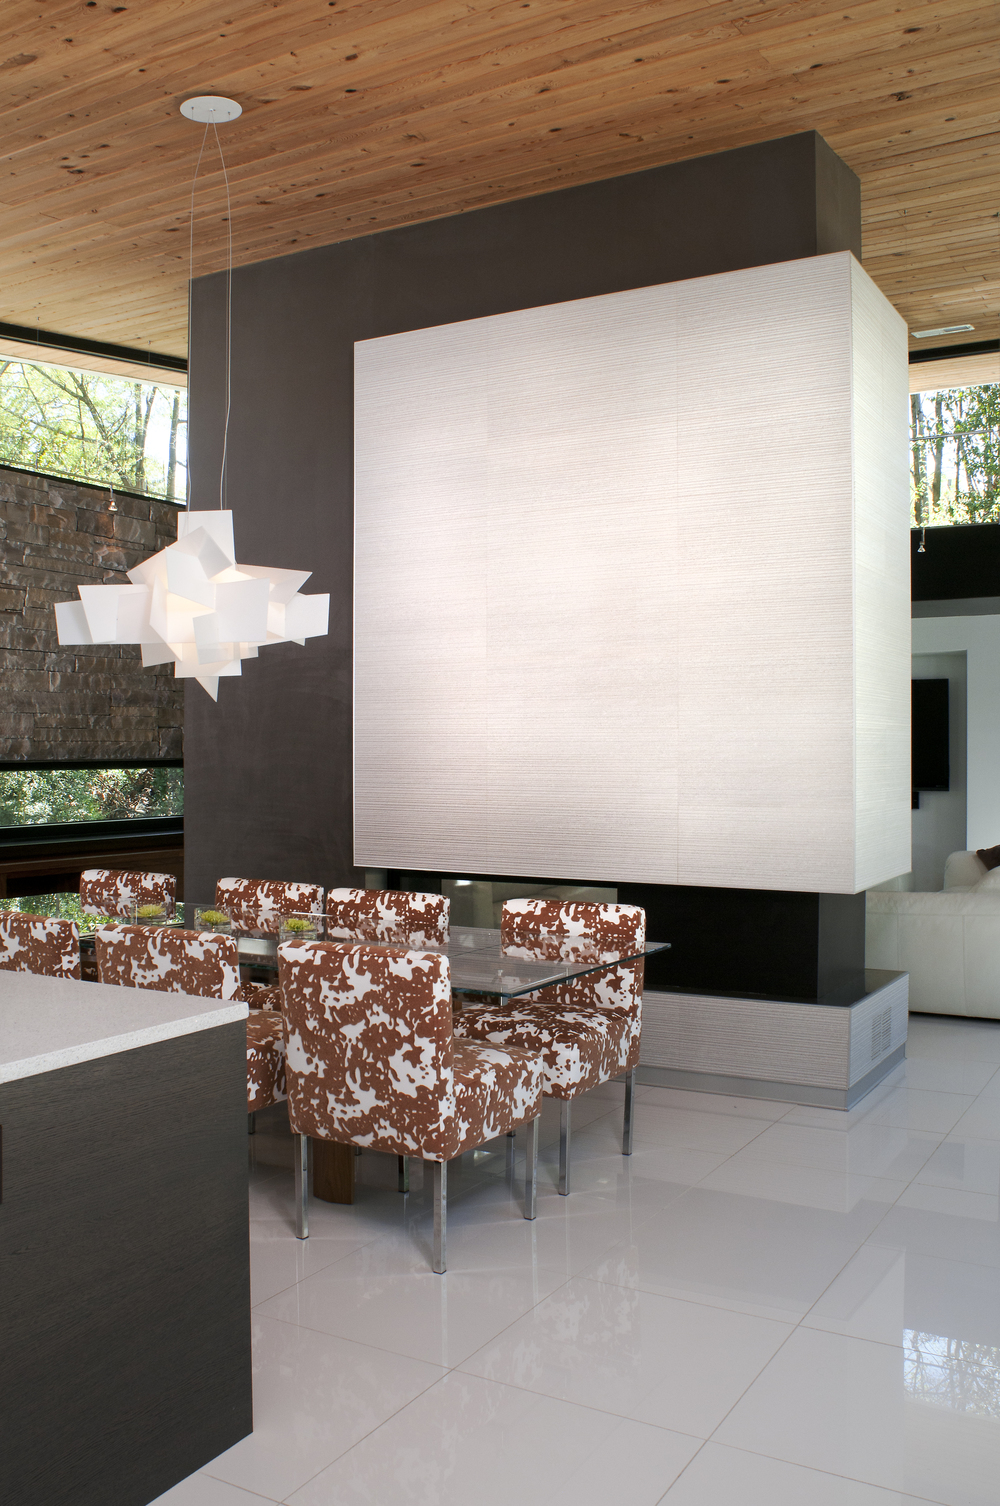 Creating a focal point through color blocking, Porcelanosa tile was selected in a grooved texture to compliment the linear orientation of the stone and the hard surfaces were softened by the suede wall covering from Innovations to add a contrasting energy and make the fireplace wall appear to float.  The Big Bang light fixture was also highlighted against the dark suede where it was previously lost in the white sheetrock.